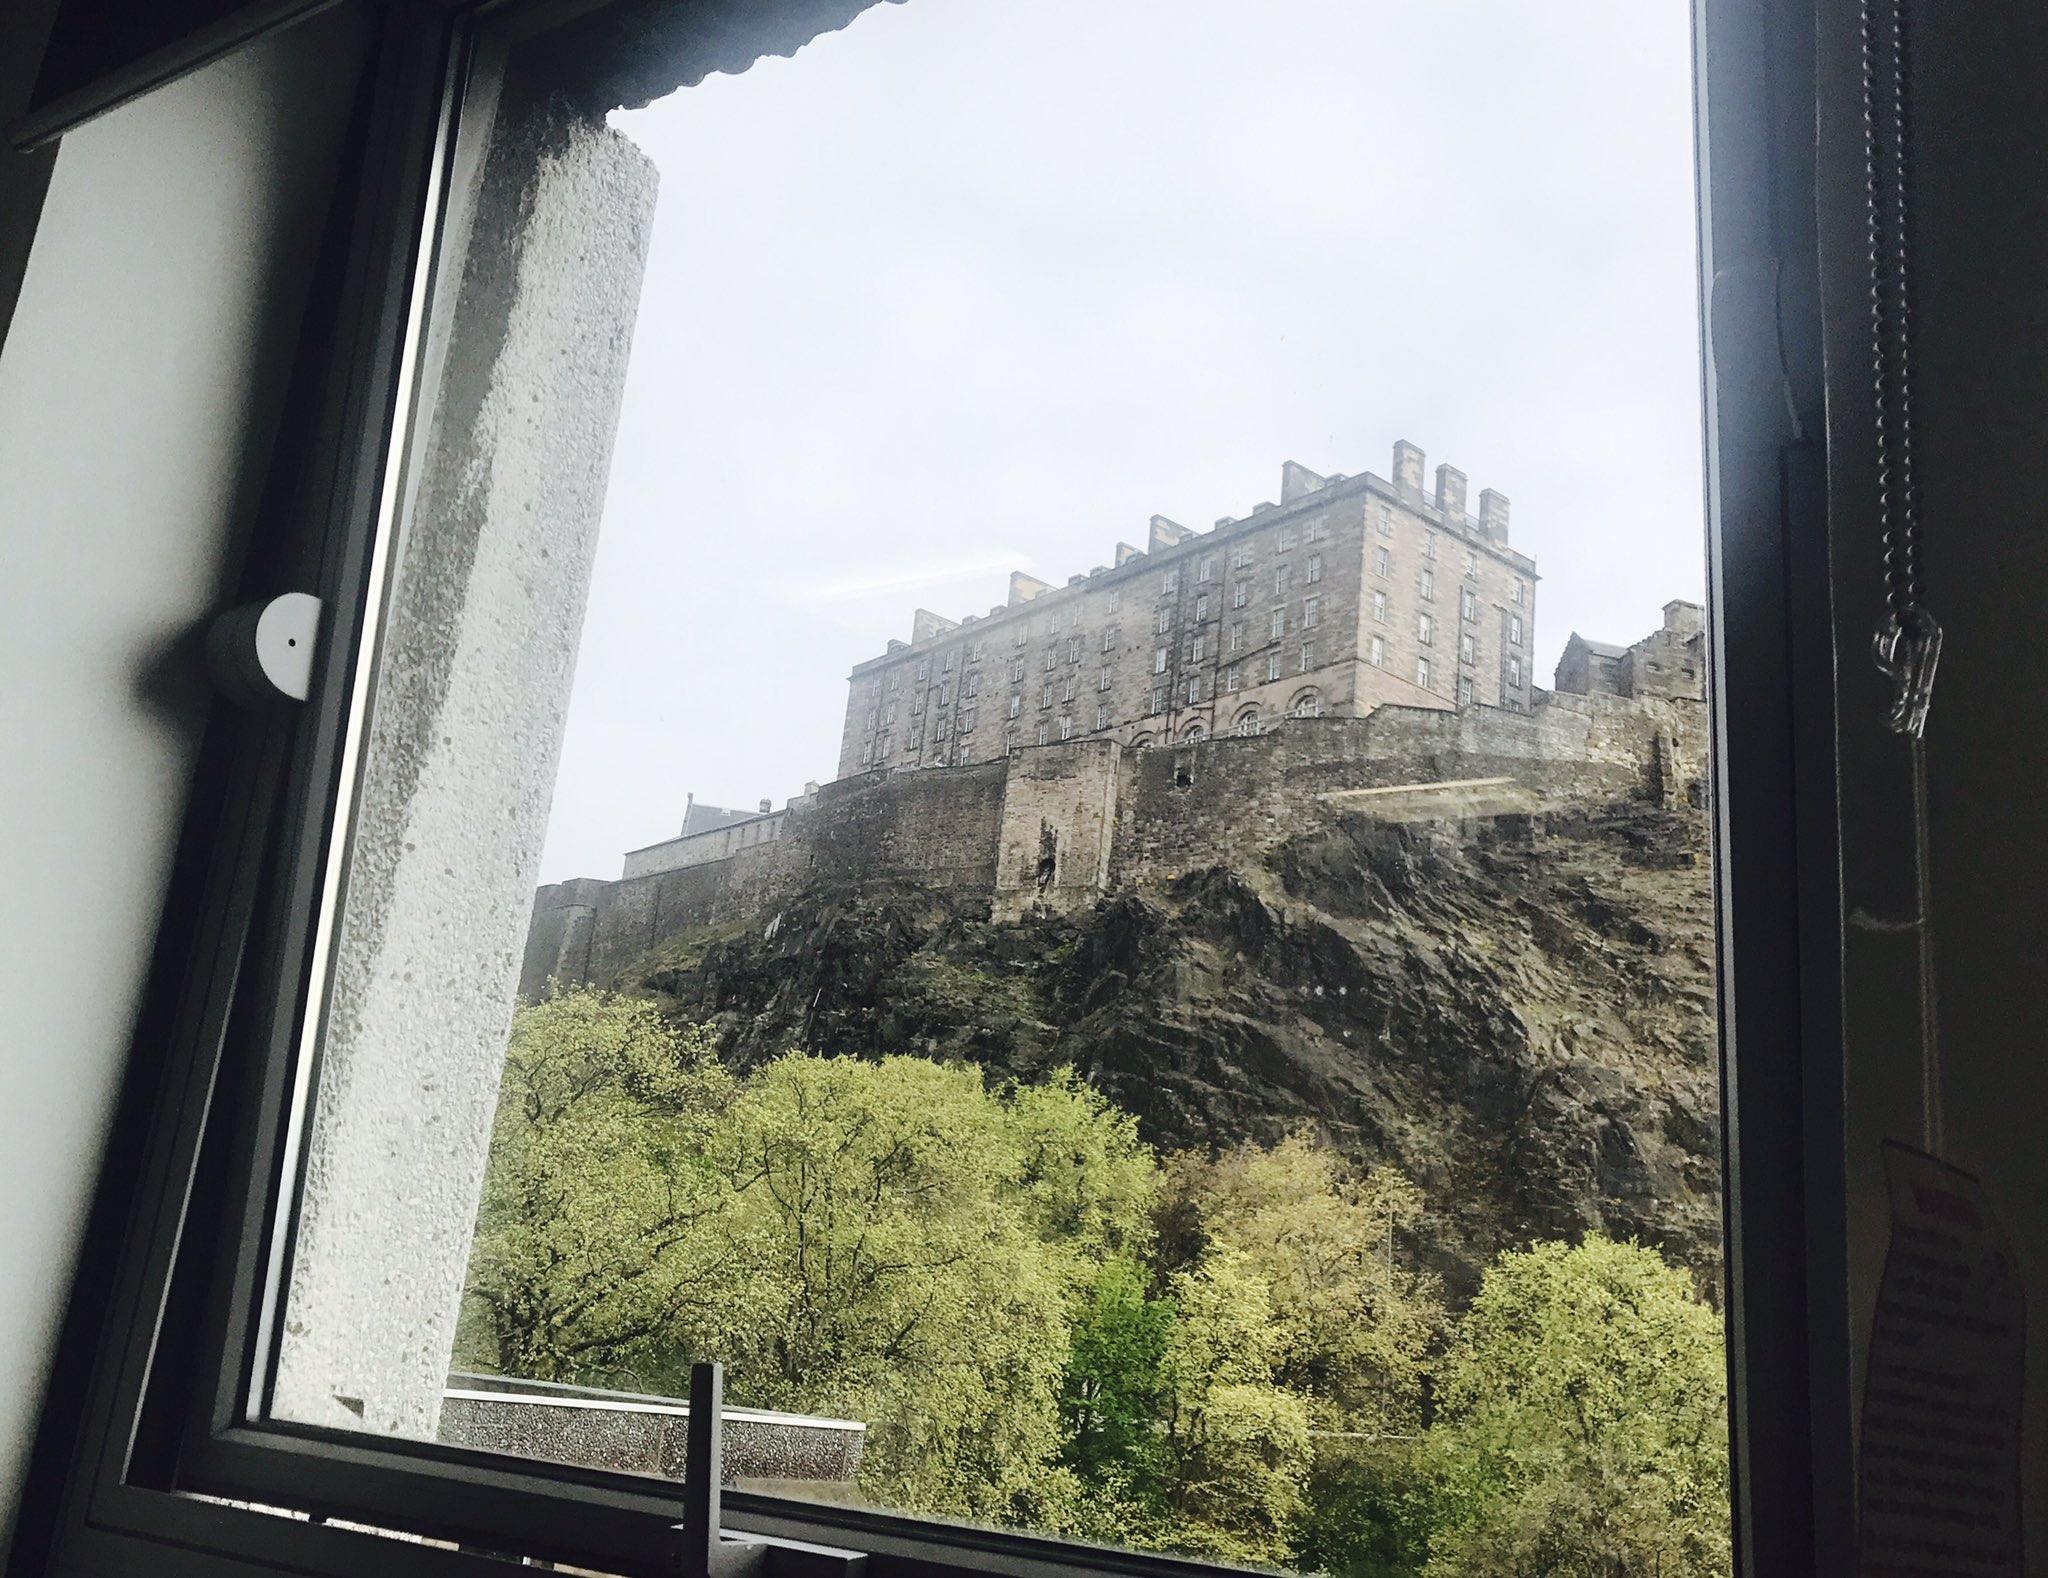 Admiring the fabulous view from Argyle House and looking forward to today's talks at #UoEOKN https://t.co/0ryc9ofeqY